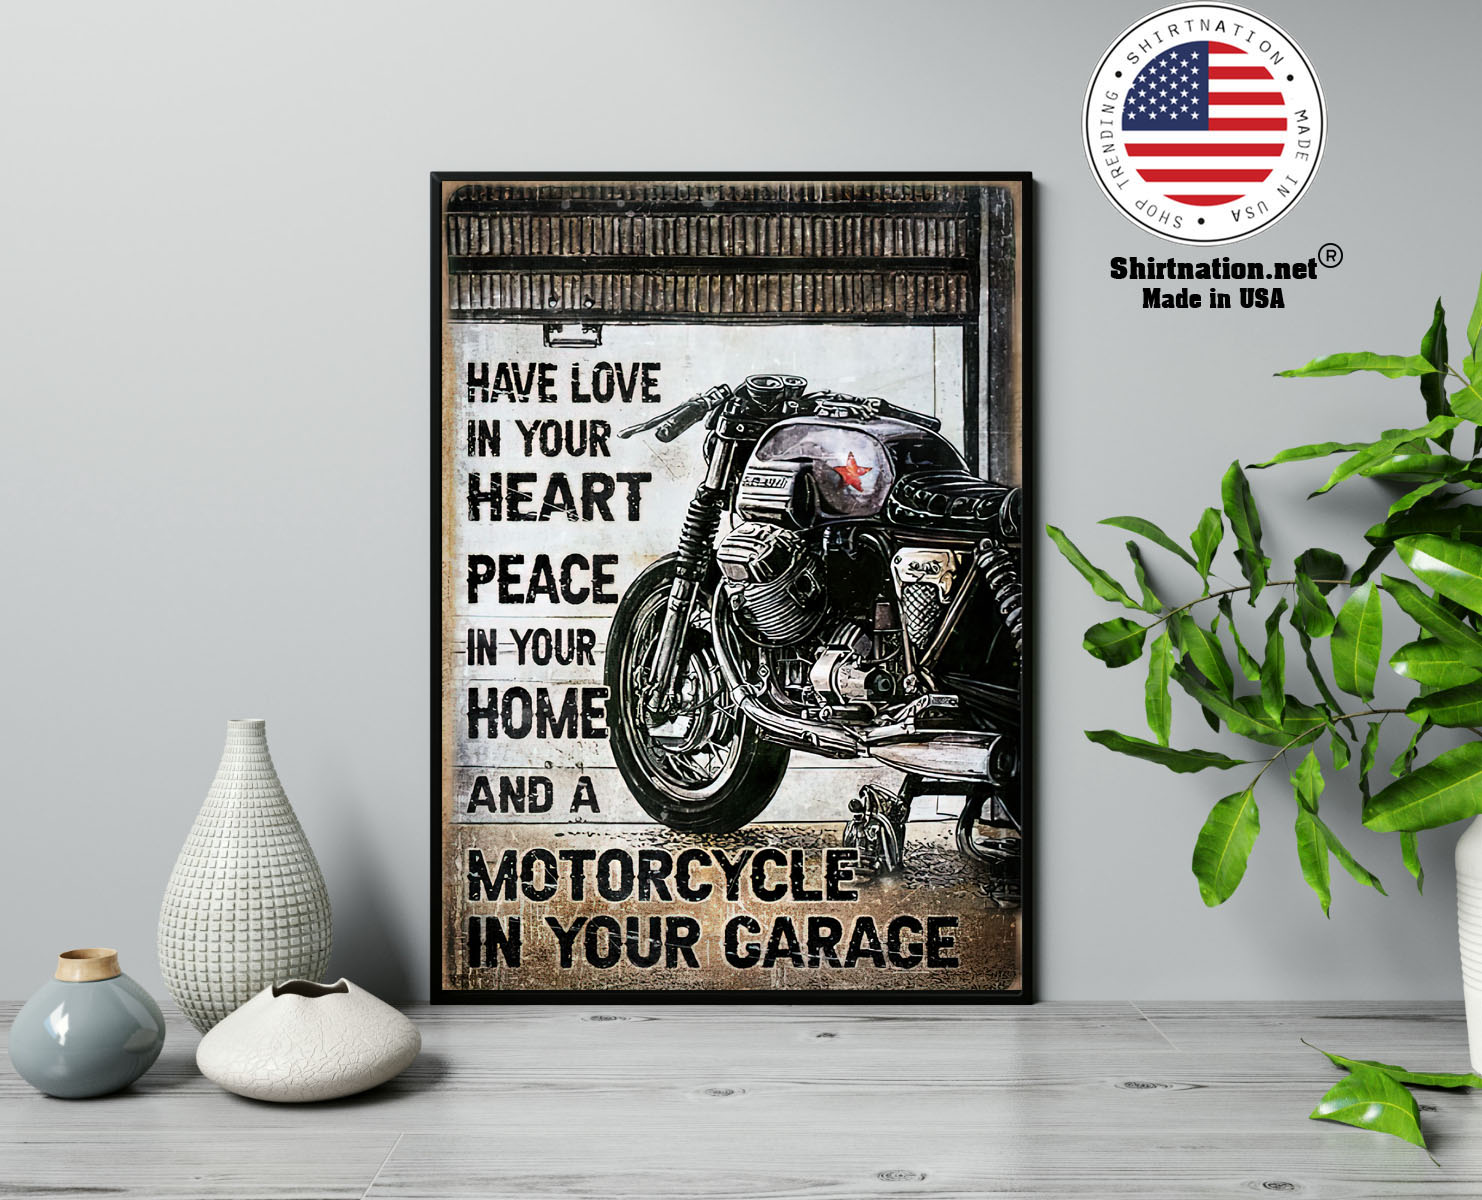 Have love in your heart peace in your home and a motorcycle in your garage poster 13